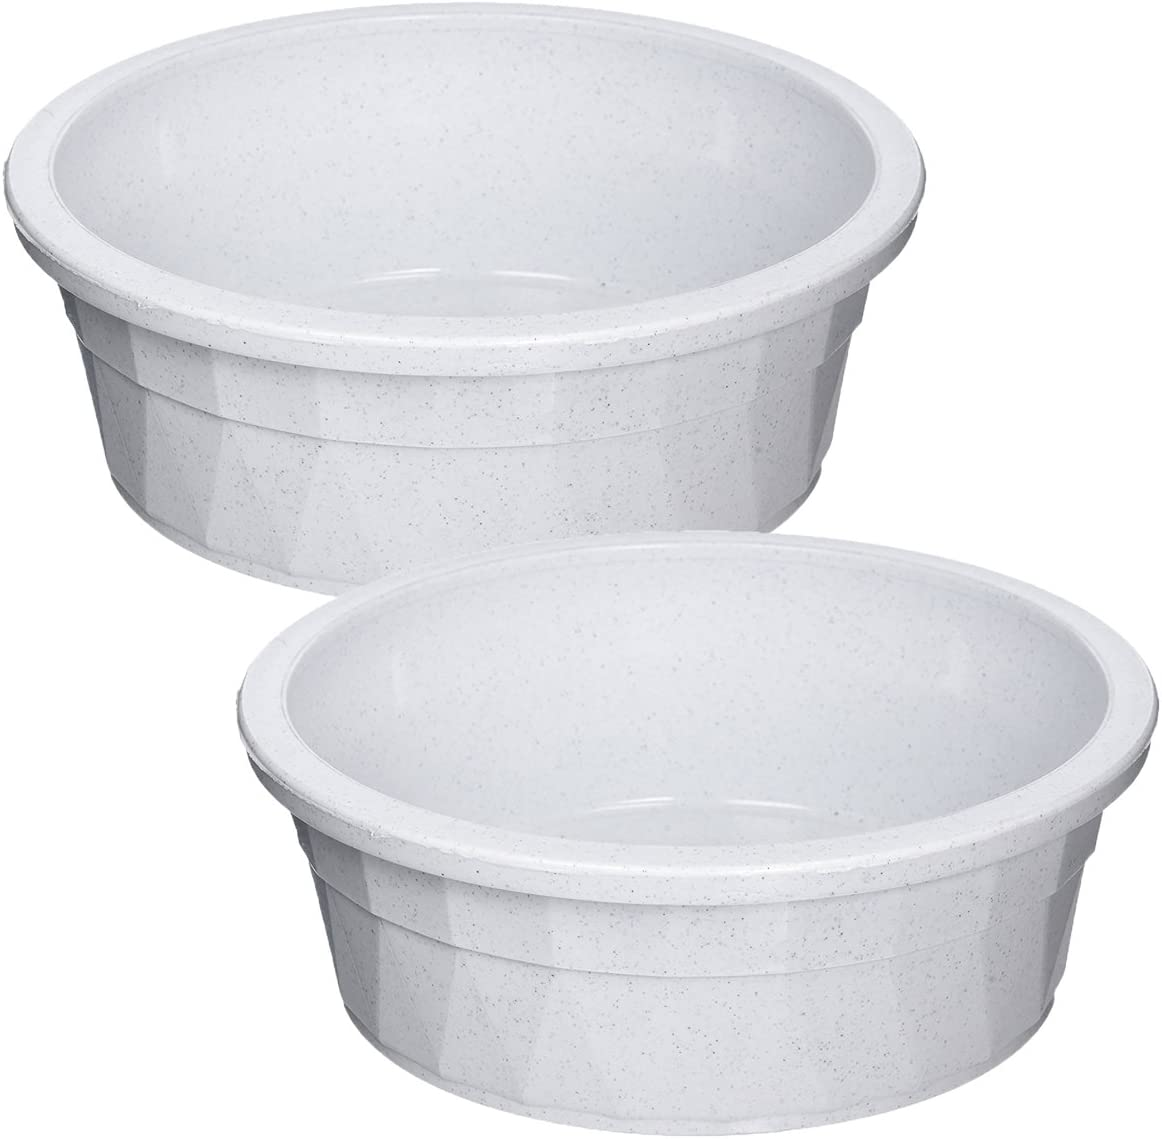 Van Ness Heavyweight Jumbo Crock Dish, 106 Ounce, Grey ( 2 Pack)